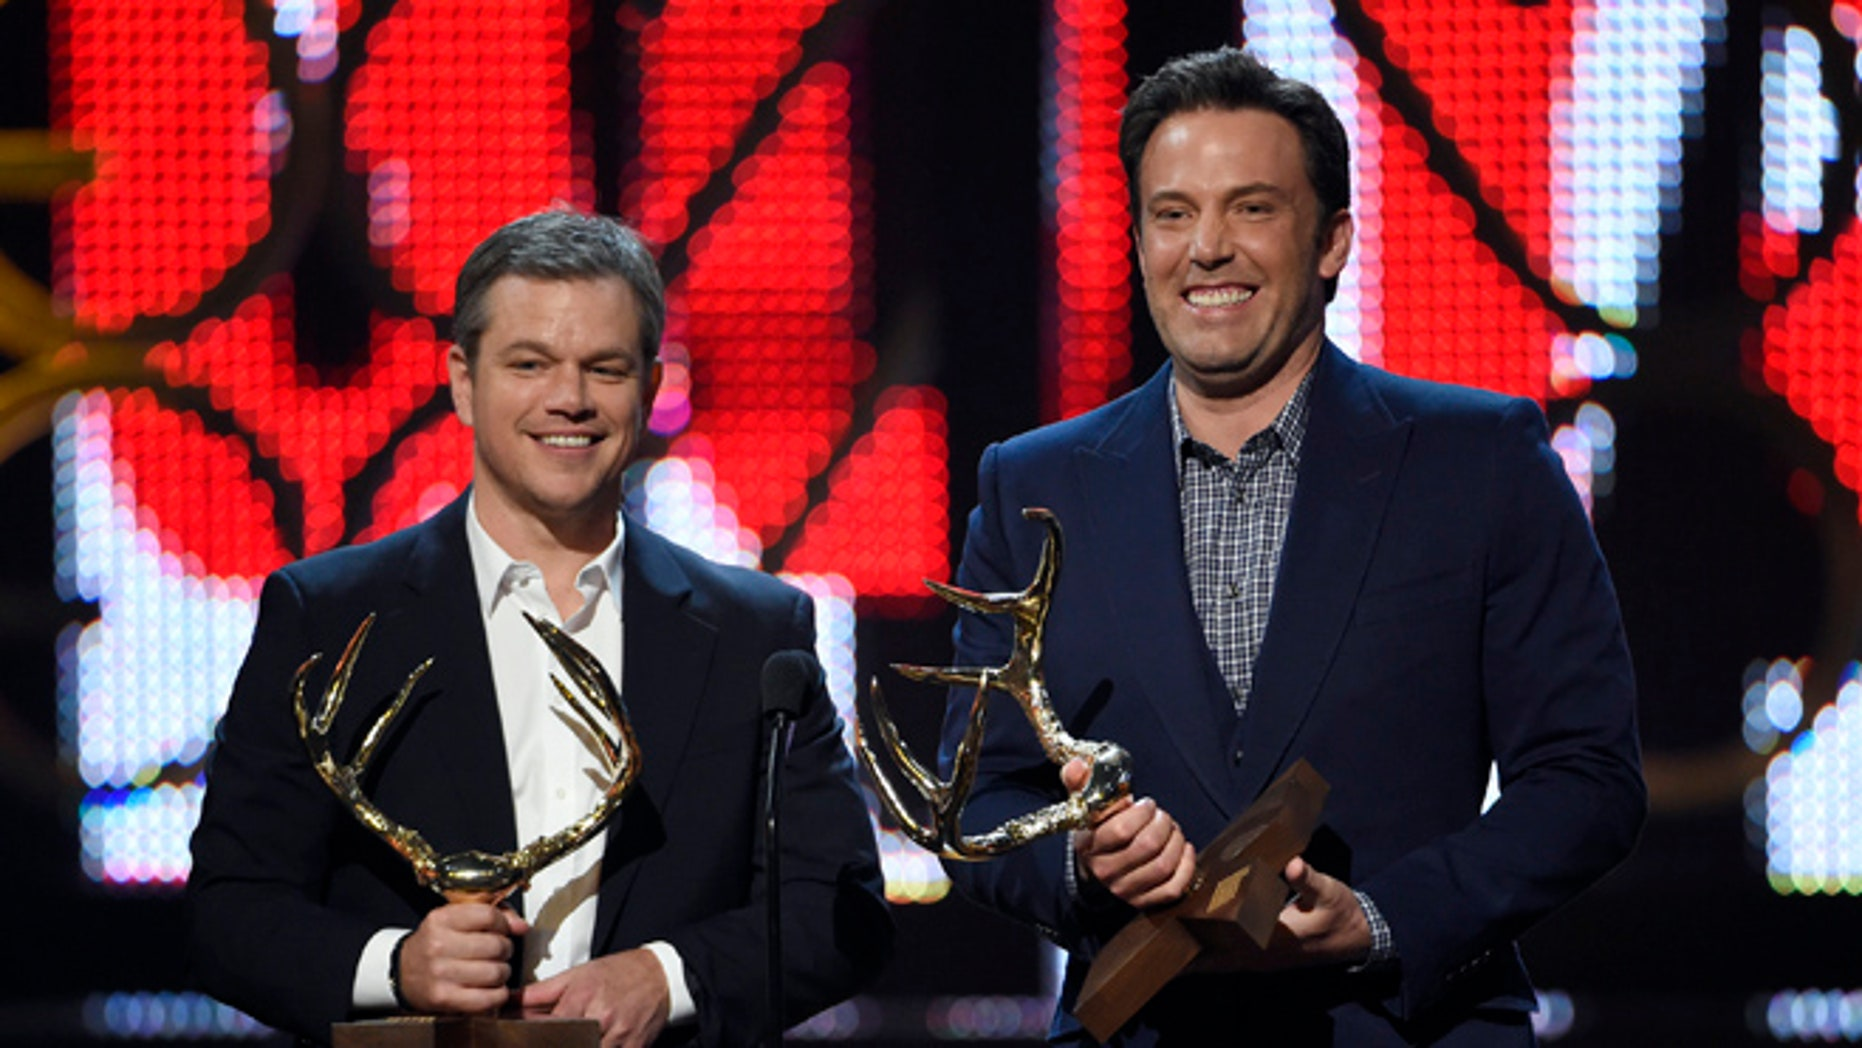 """Matt Damon and Ben Affleck participated in a live read of their classic script """"Good Will Hunting."""""""